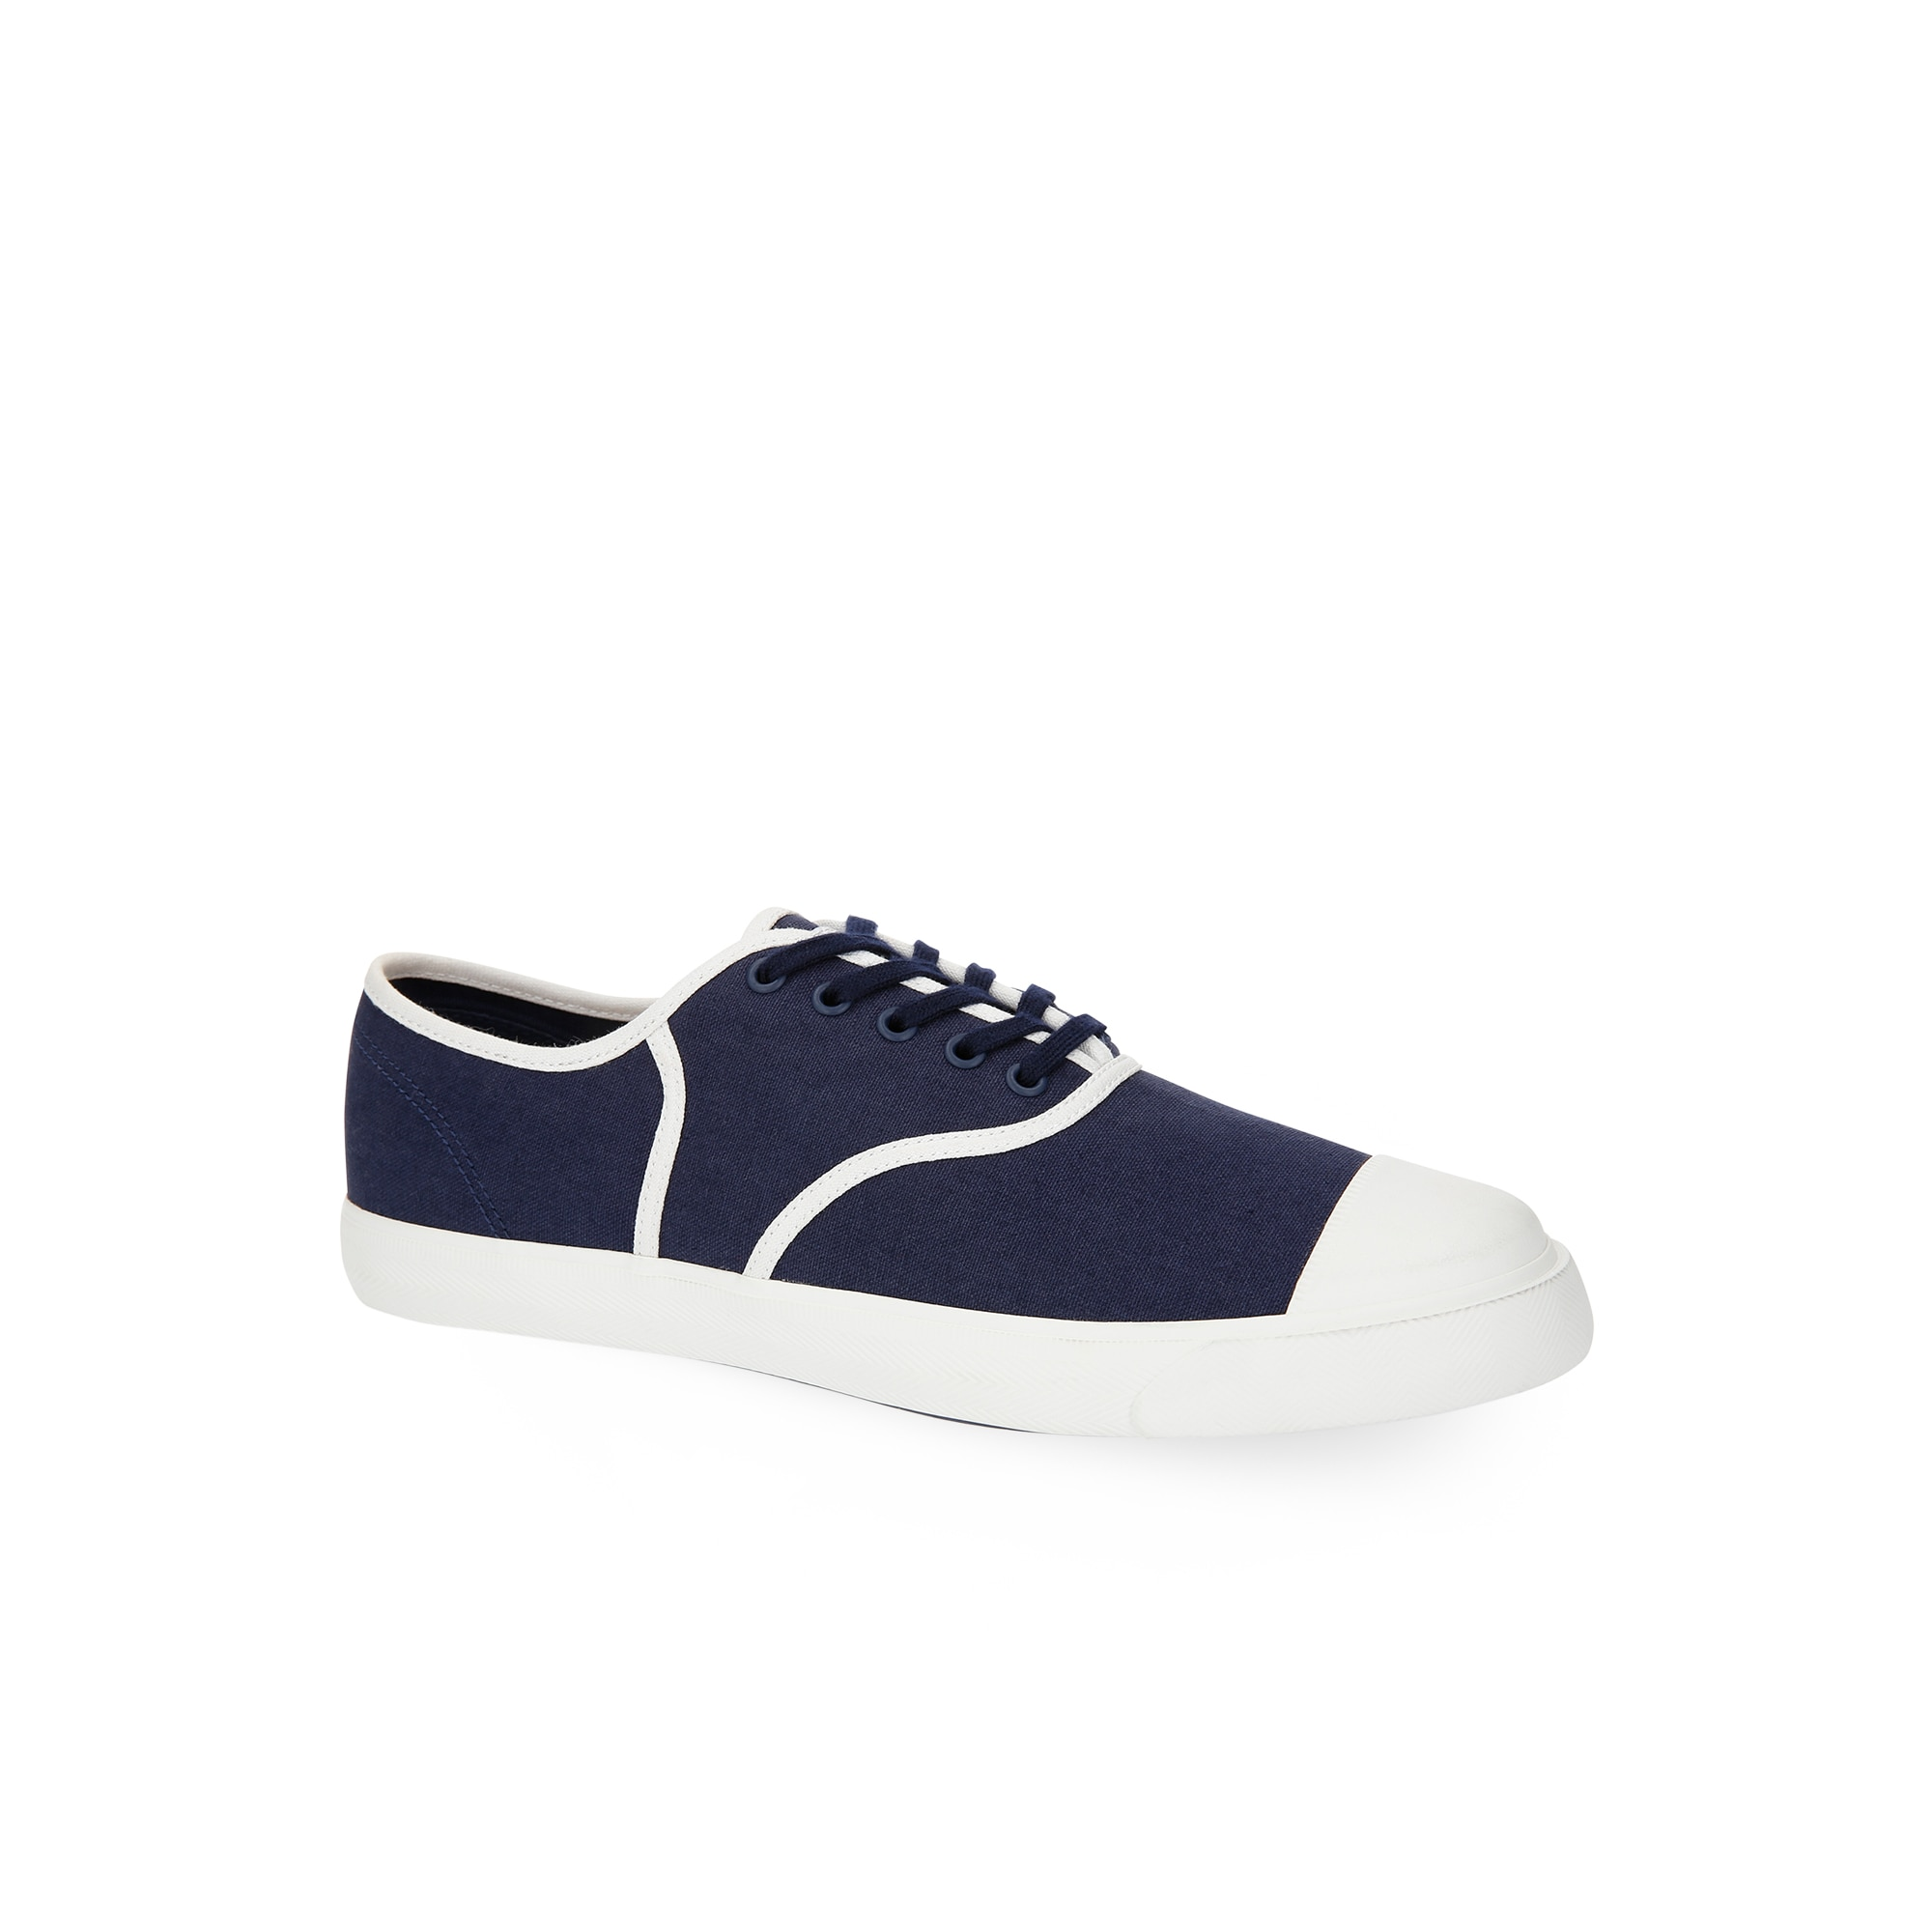 Men's Rene 85th Anniversary Canvas Sneakers